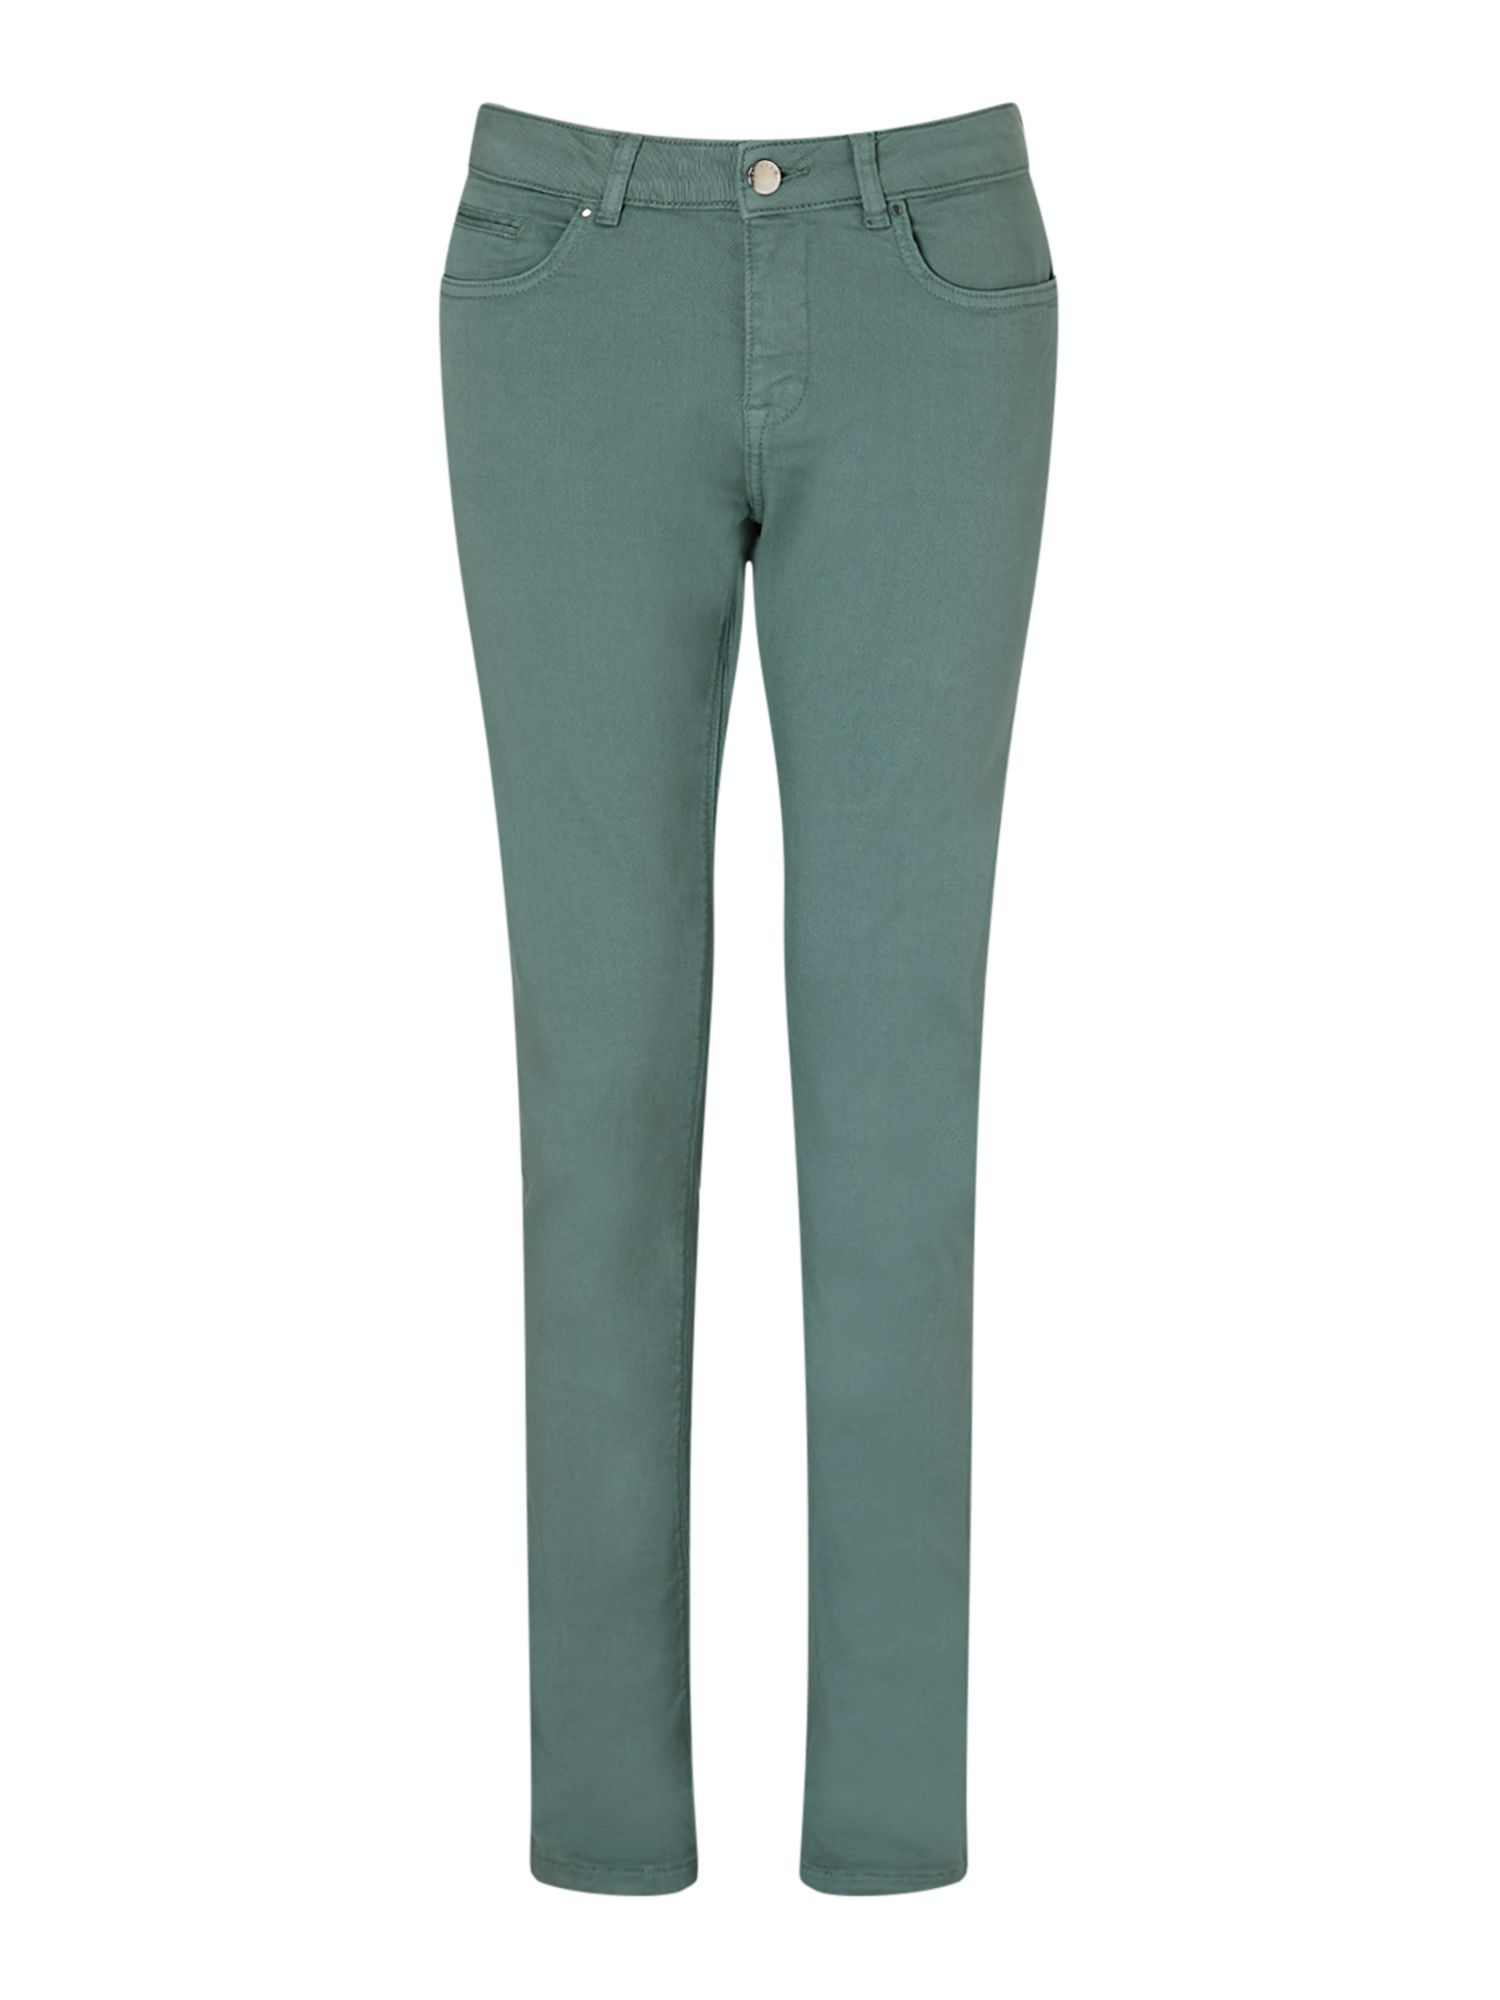 Jigsaw 28 Garment Dye Richmond Jean, Green